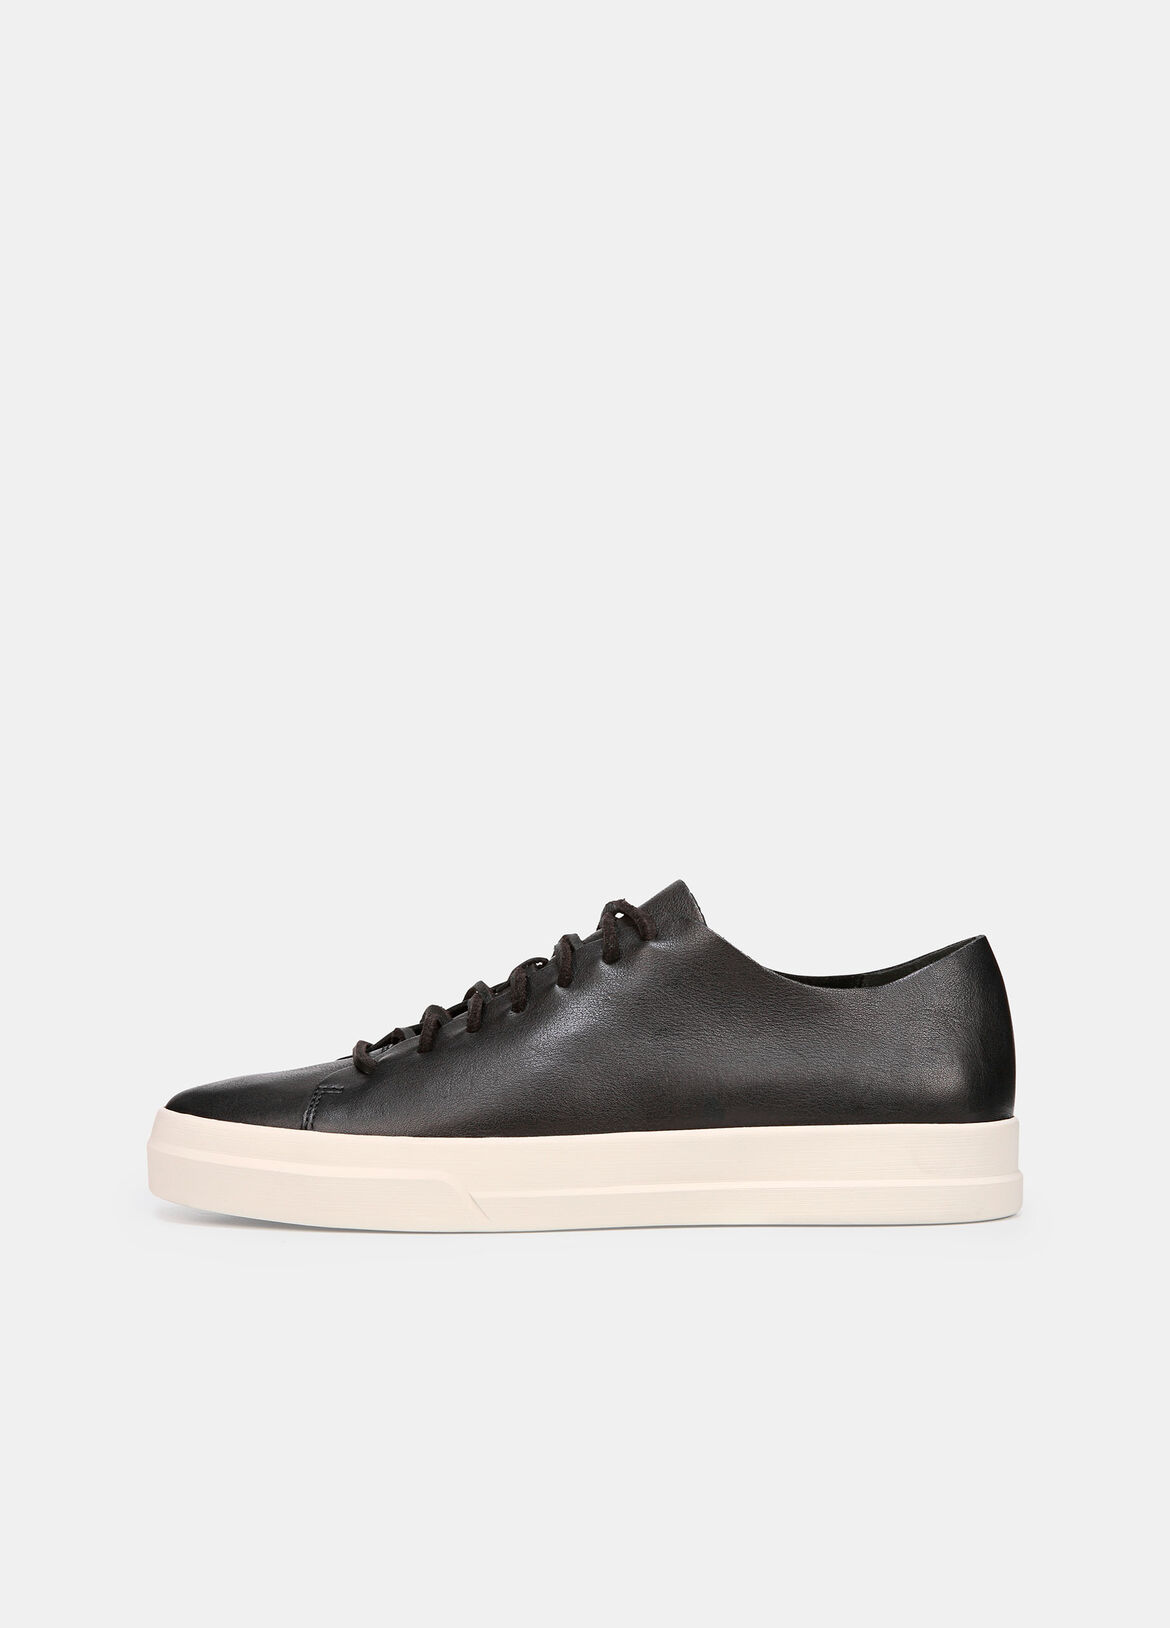 Copeland Leather Sneakers 9e502db07614